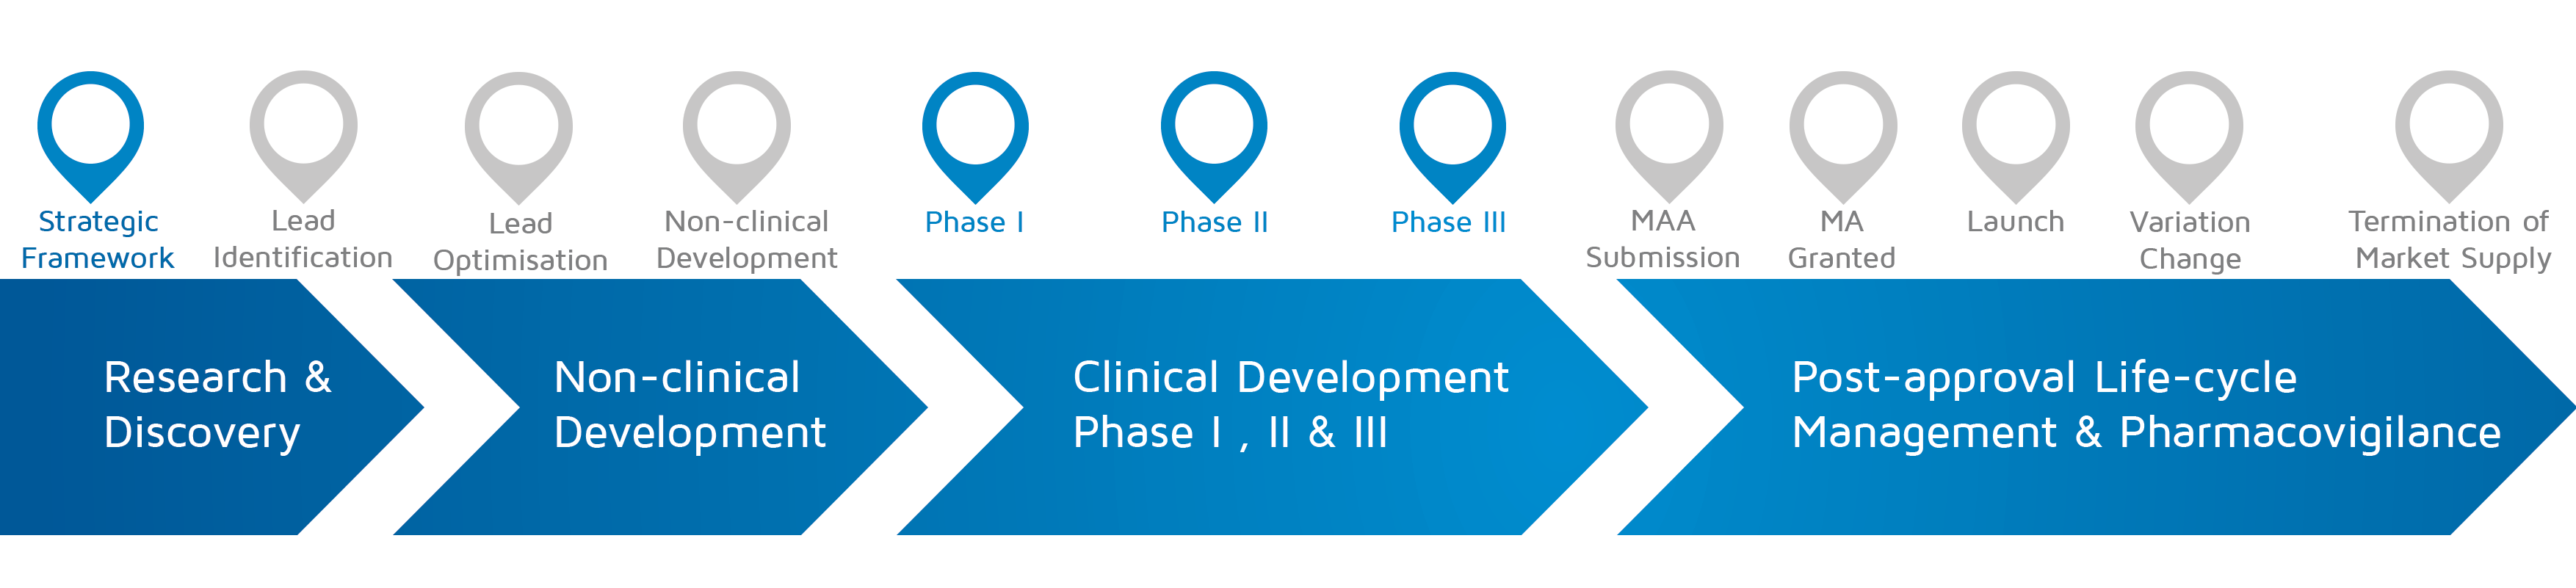 A visual representation of in which phase of medicines research and development process an activity takes place with strategic framework and Phase I-II-III highlighted.